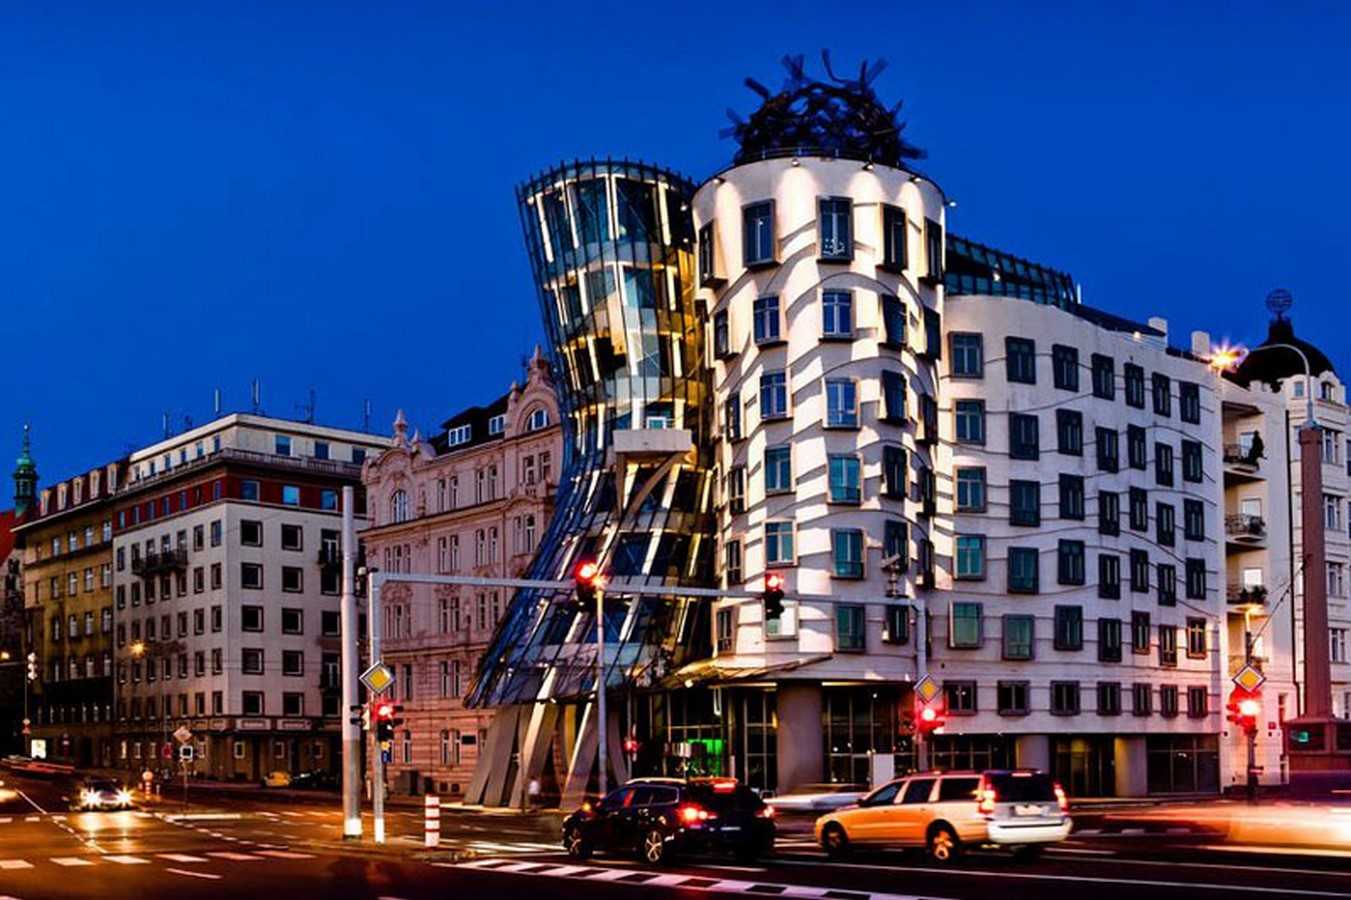 The Dancing House by Frank Gehry and Vlado Milunic - Sheet1